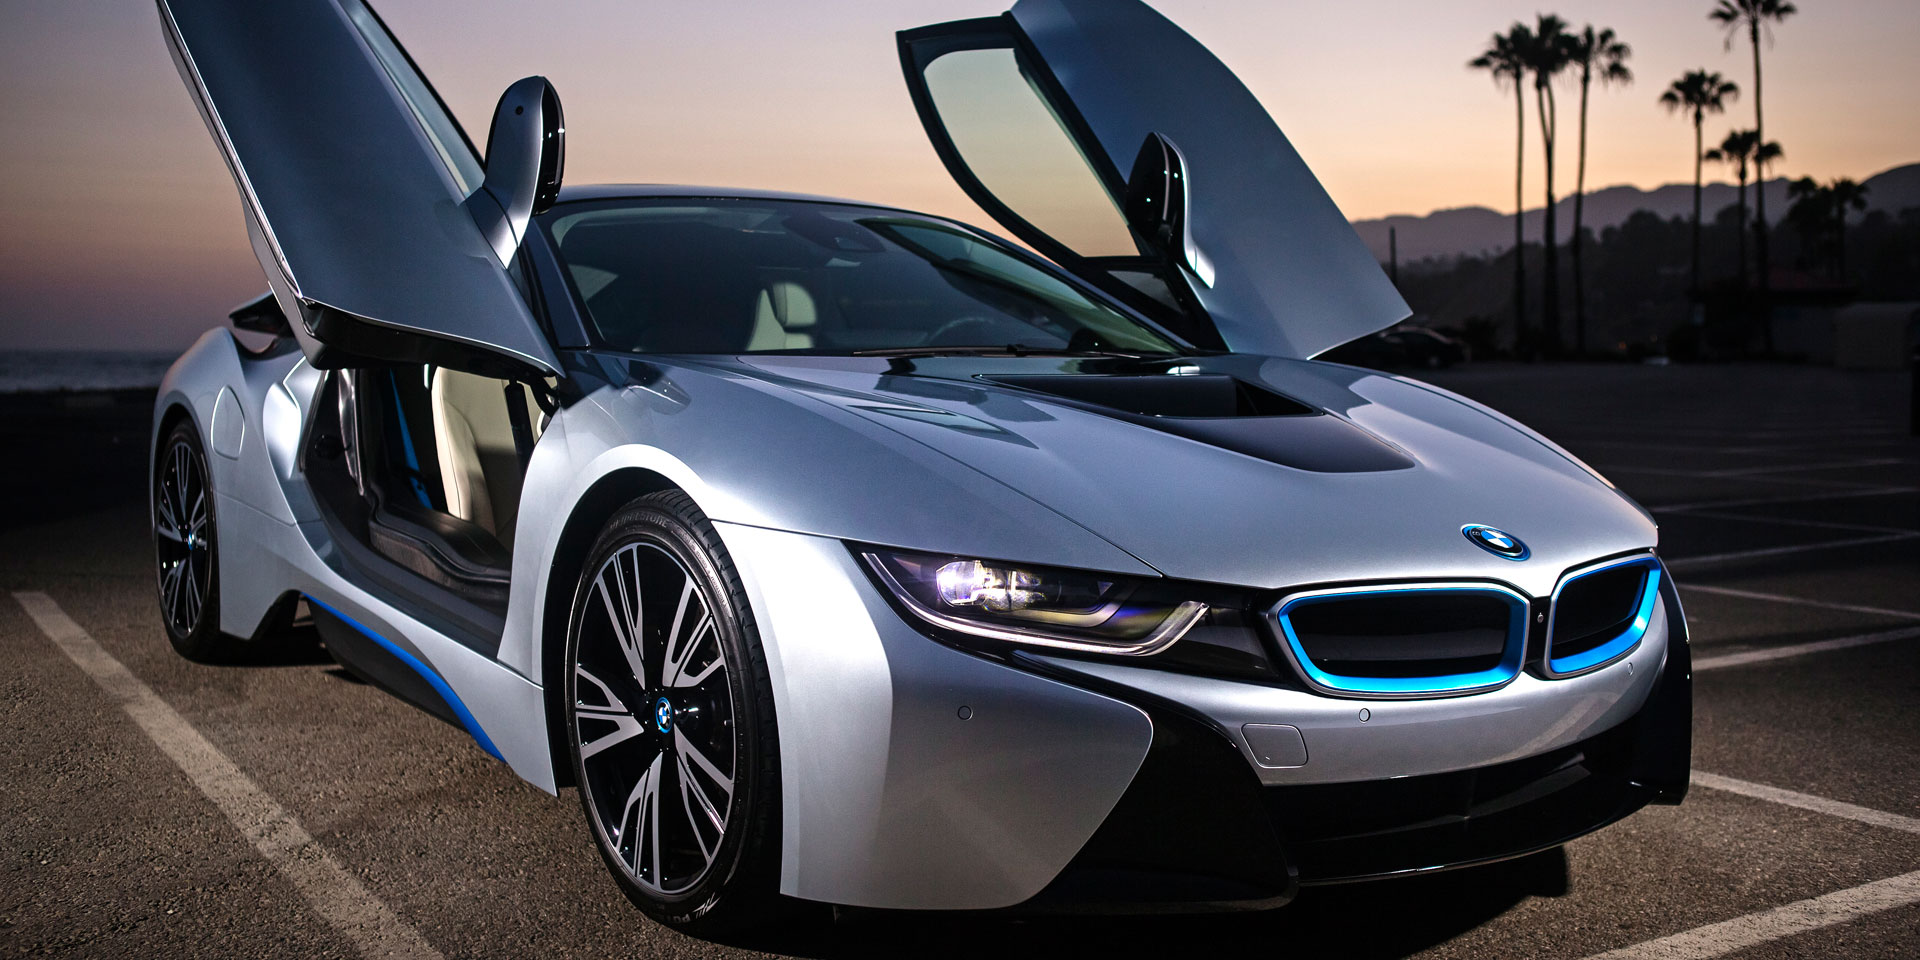 2017 Bmw I8 The Is Brand S Halo Performance Car Sleek Two Plus Four Seater Competes Against Other Rare Gems Like Audi R8